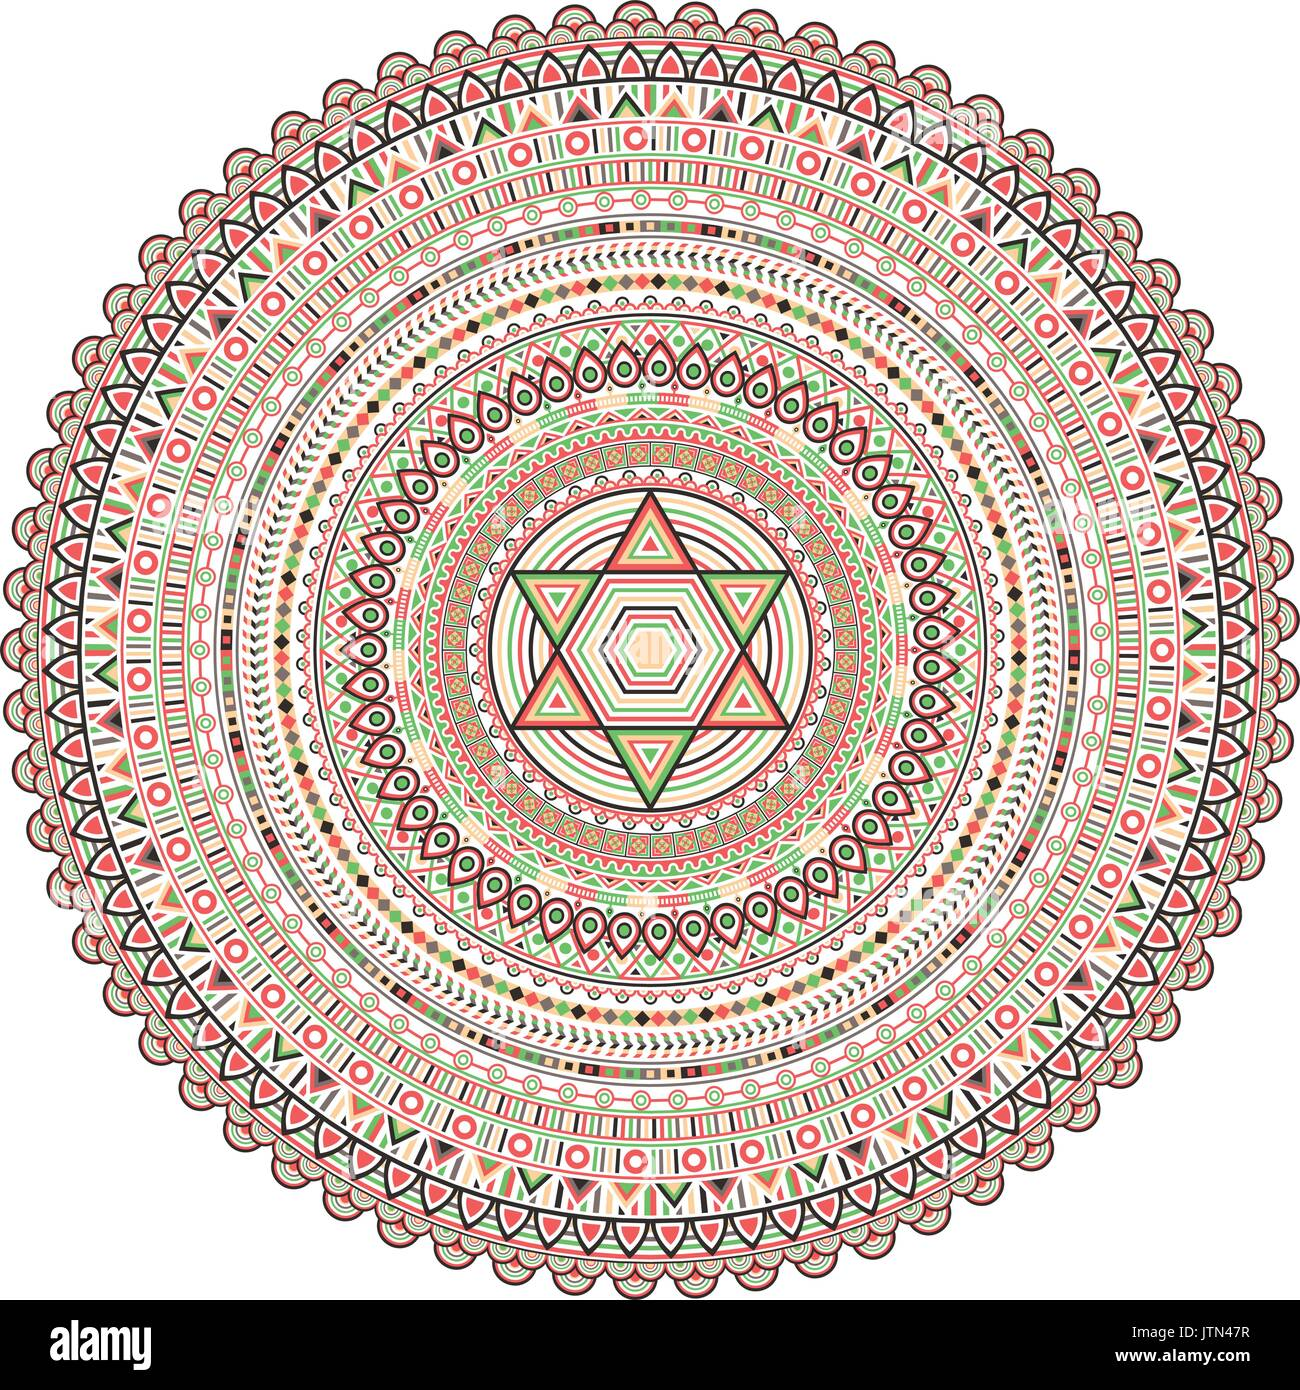 Geometrical Mandala. Vintage and traditional decorative elements. This  mandala was drew really detailed way